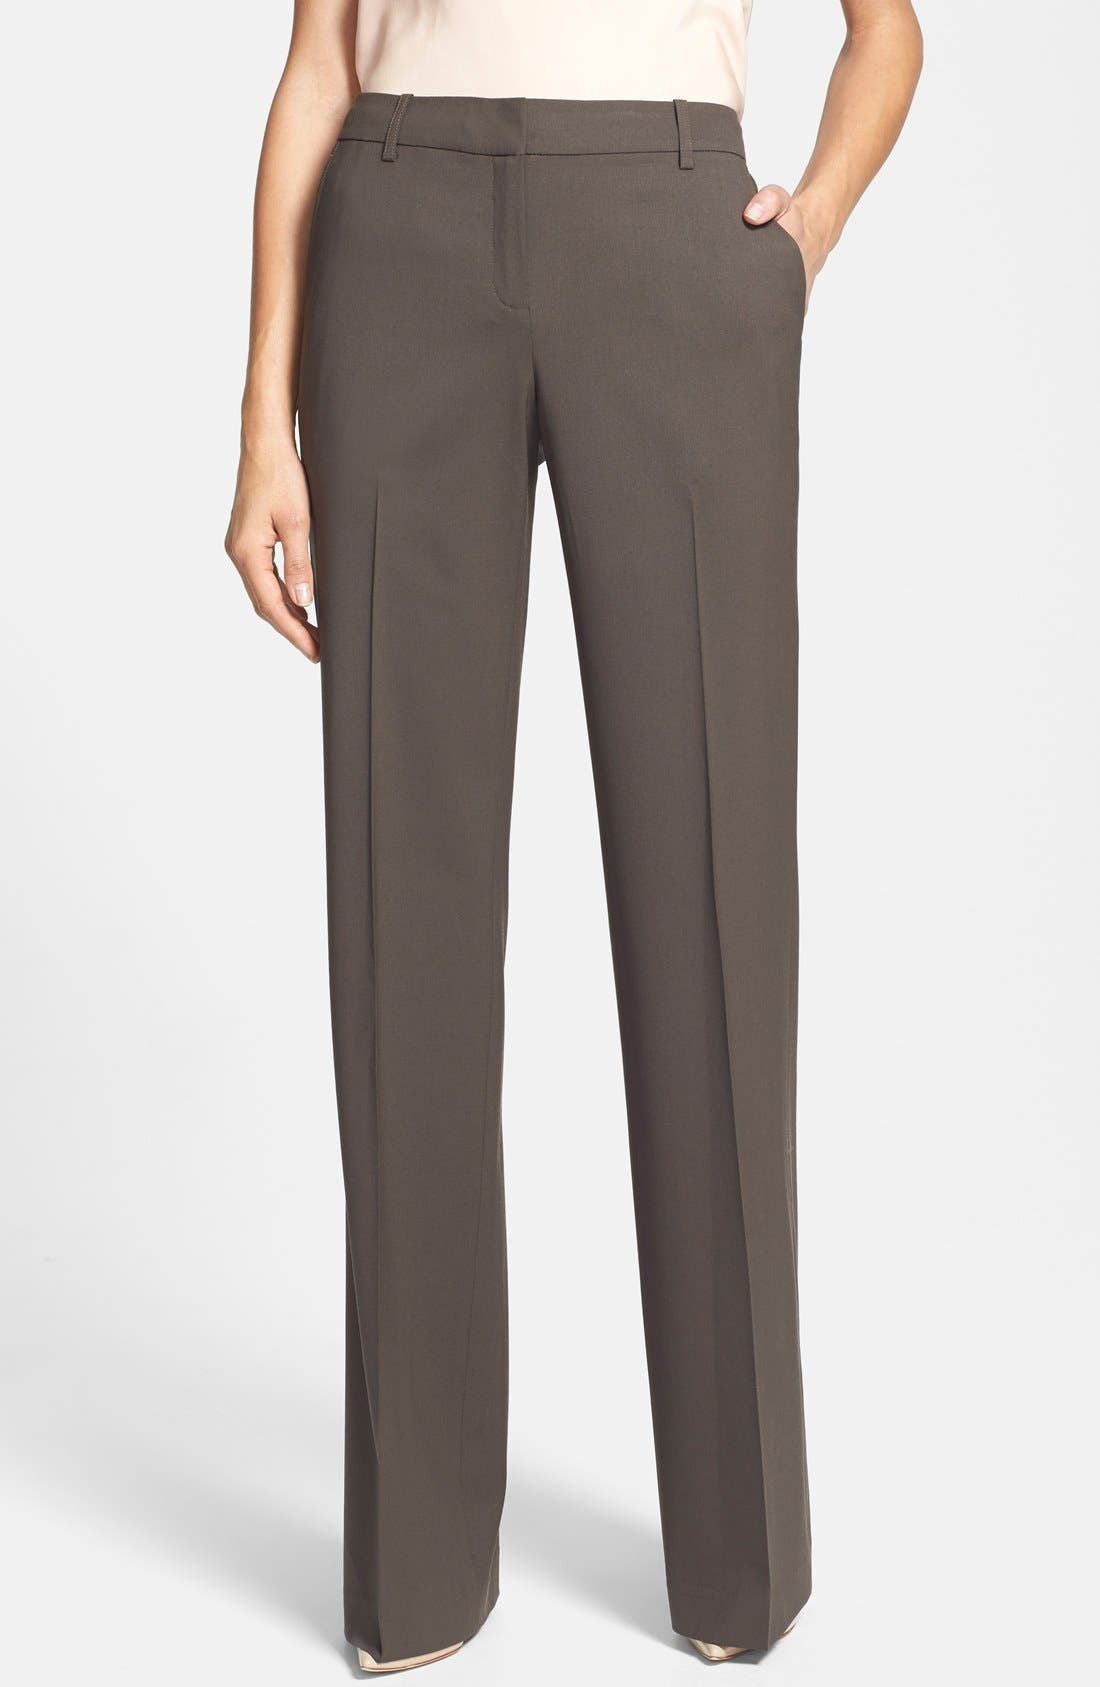 Alternate Image 1 Selected - Lafayette 148 New York Stretch Wool Pants